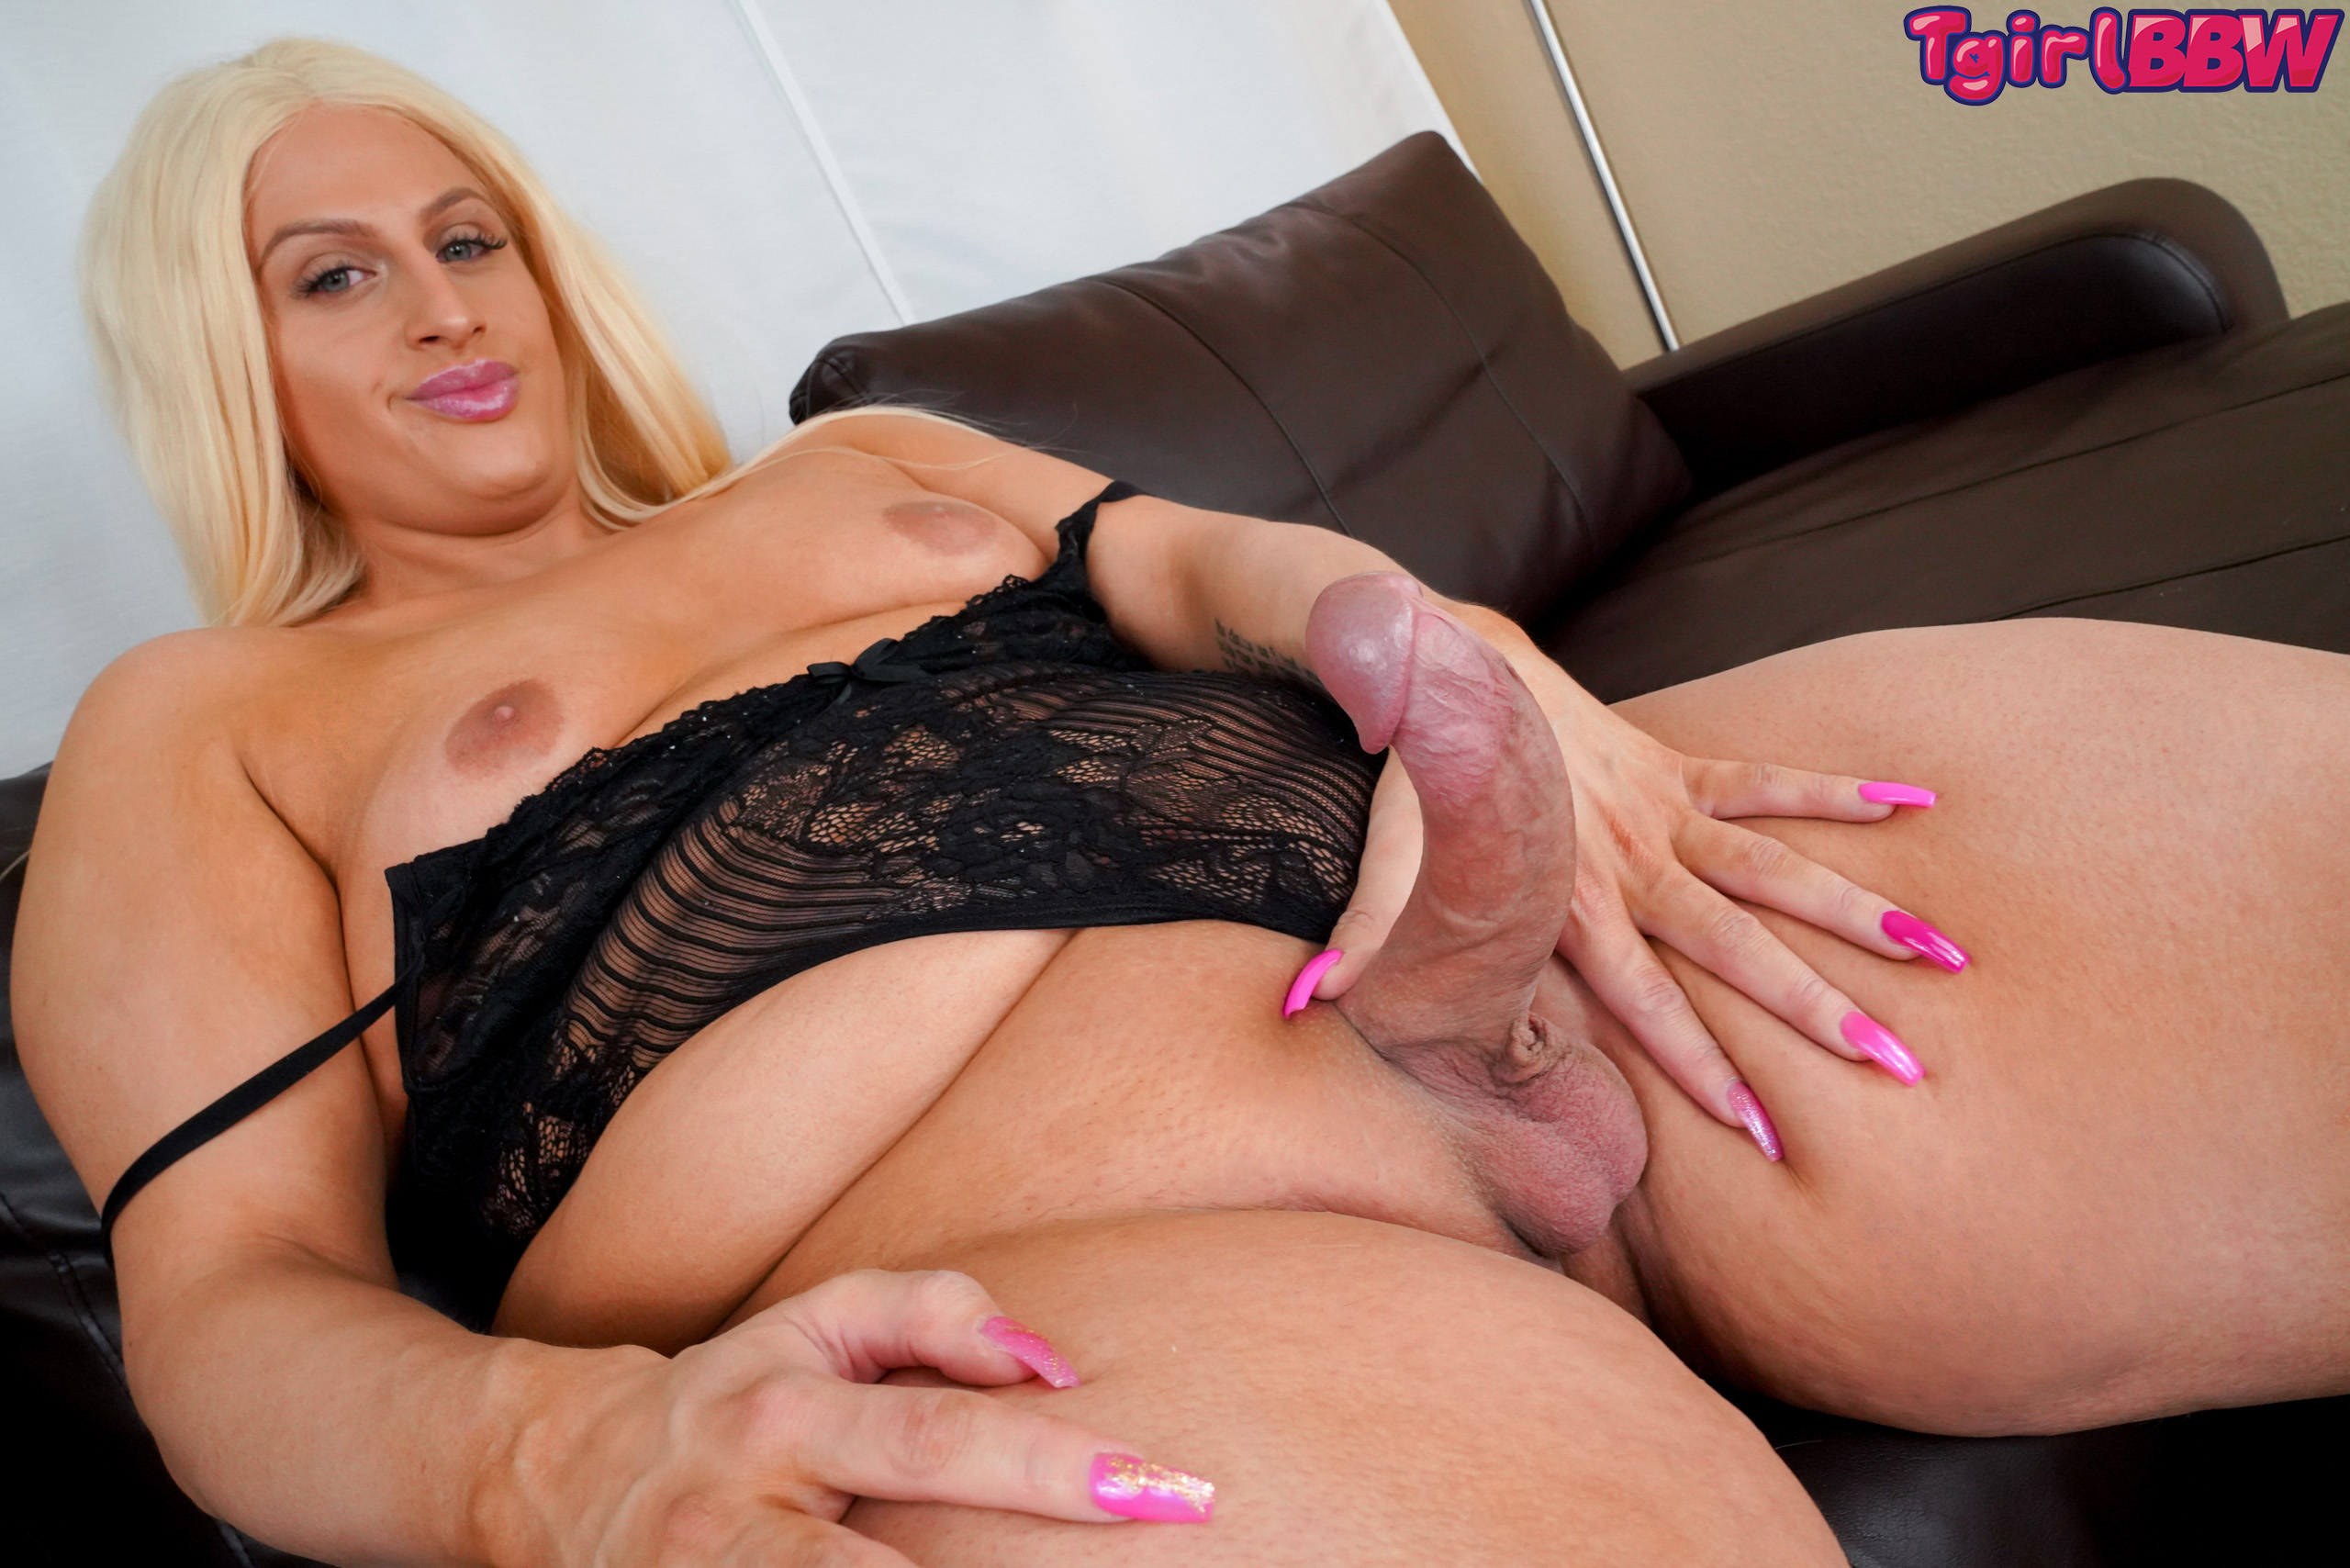 Bbw Ts Porn curvaceous blonde naomi moan – grooby